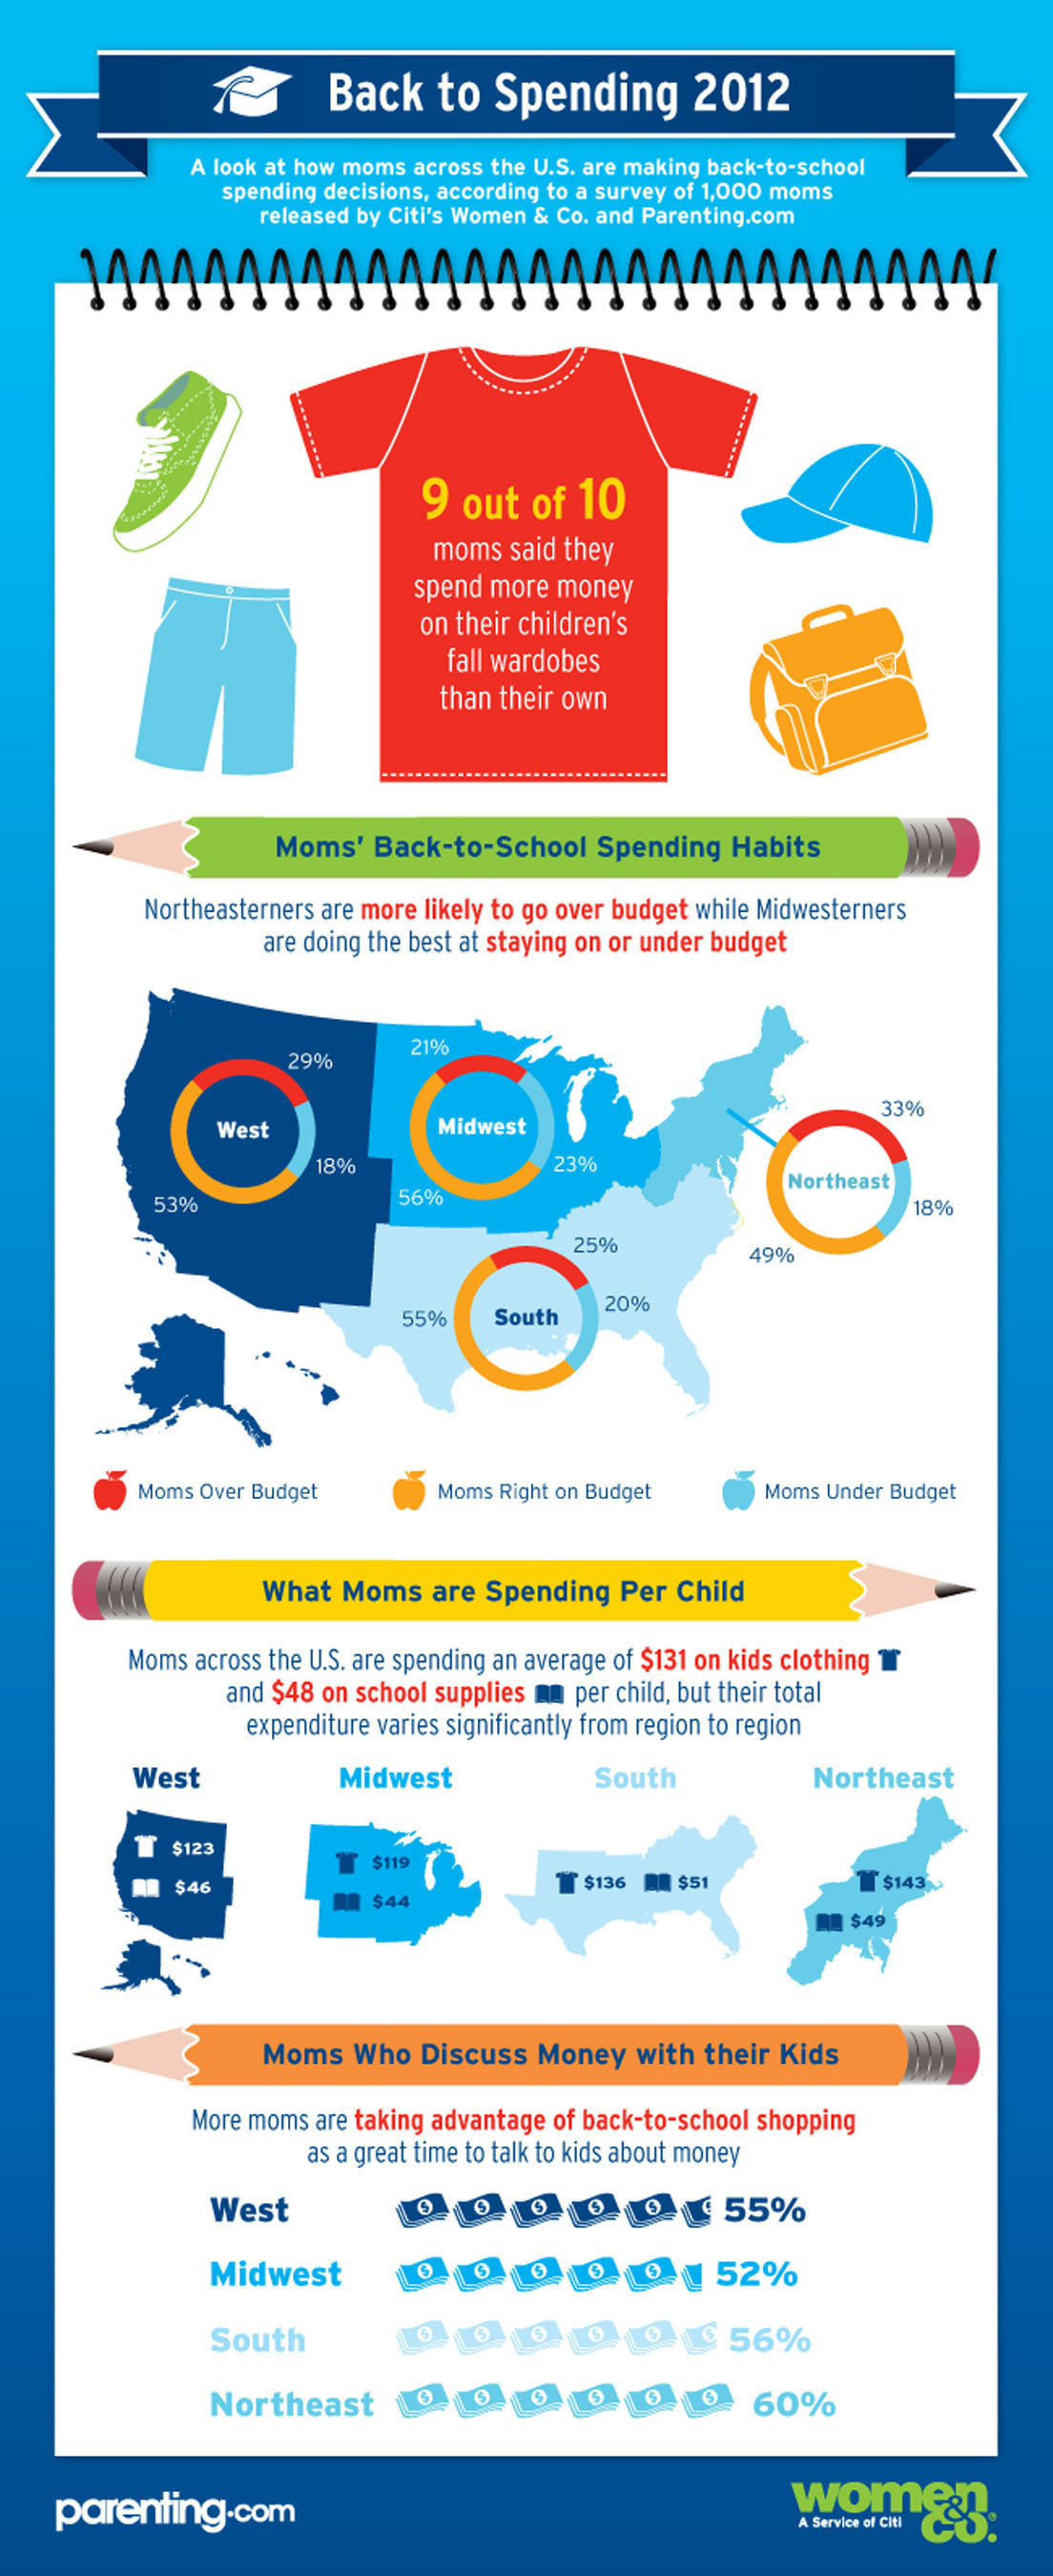 Women & Co., Citi's personal finance resource for women, and Parenting.com, online home of Parenting and Babytalk magazines, take a look at how moms across the U.S. are making back-to-school spending decisions in their 2012 Back-to-School Spending Report.  (PRNewsFoto/Women & Co.)